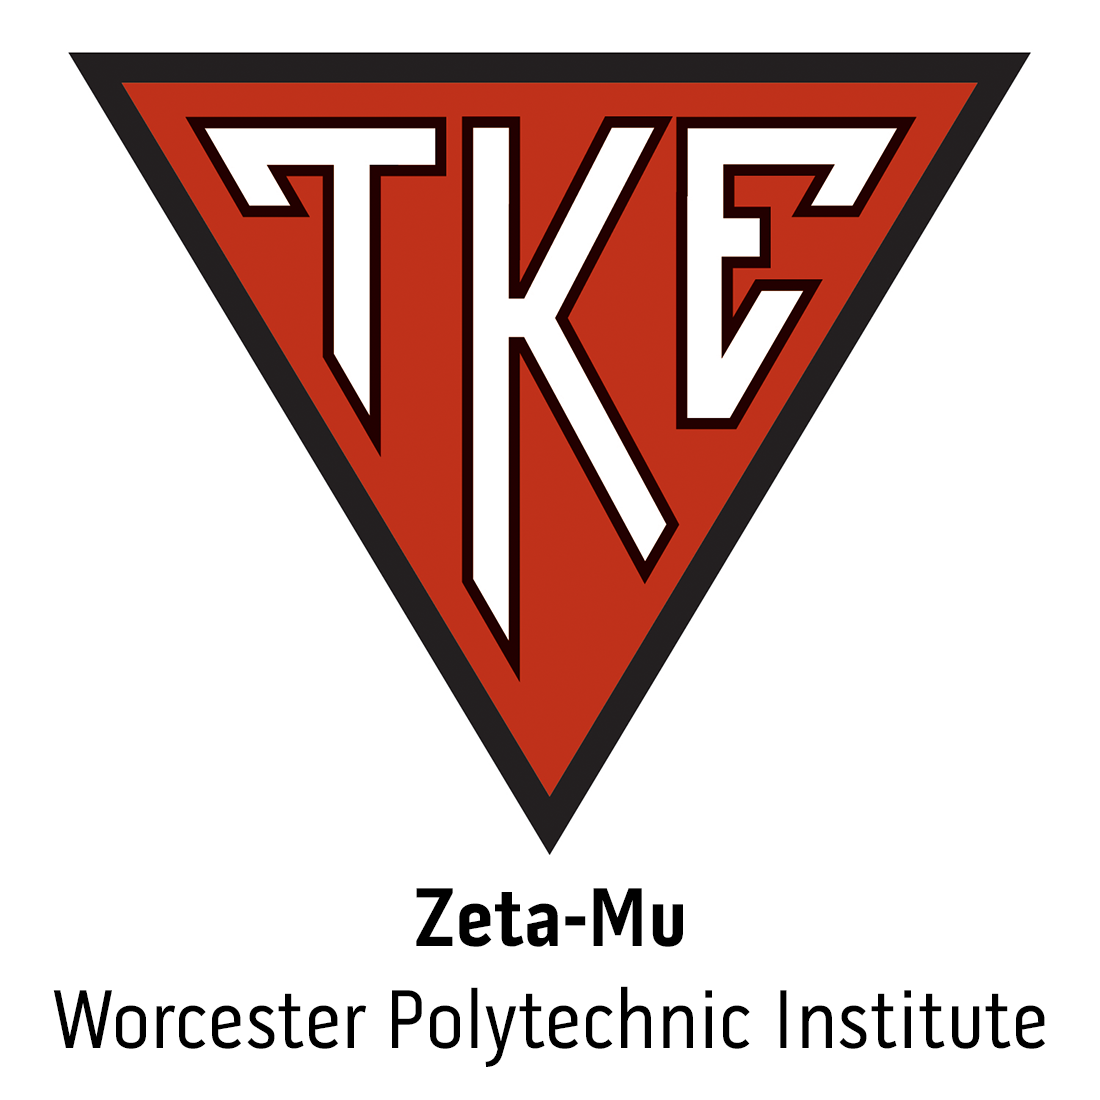 Zeta-Mu Chapter at Worcester Polytechnic Institute